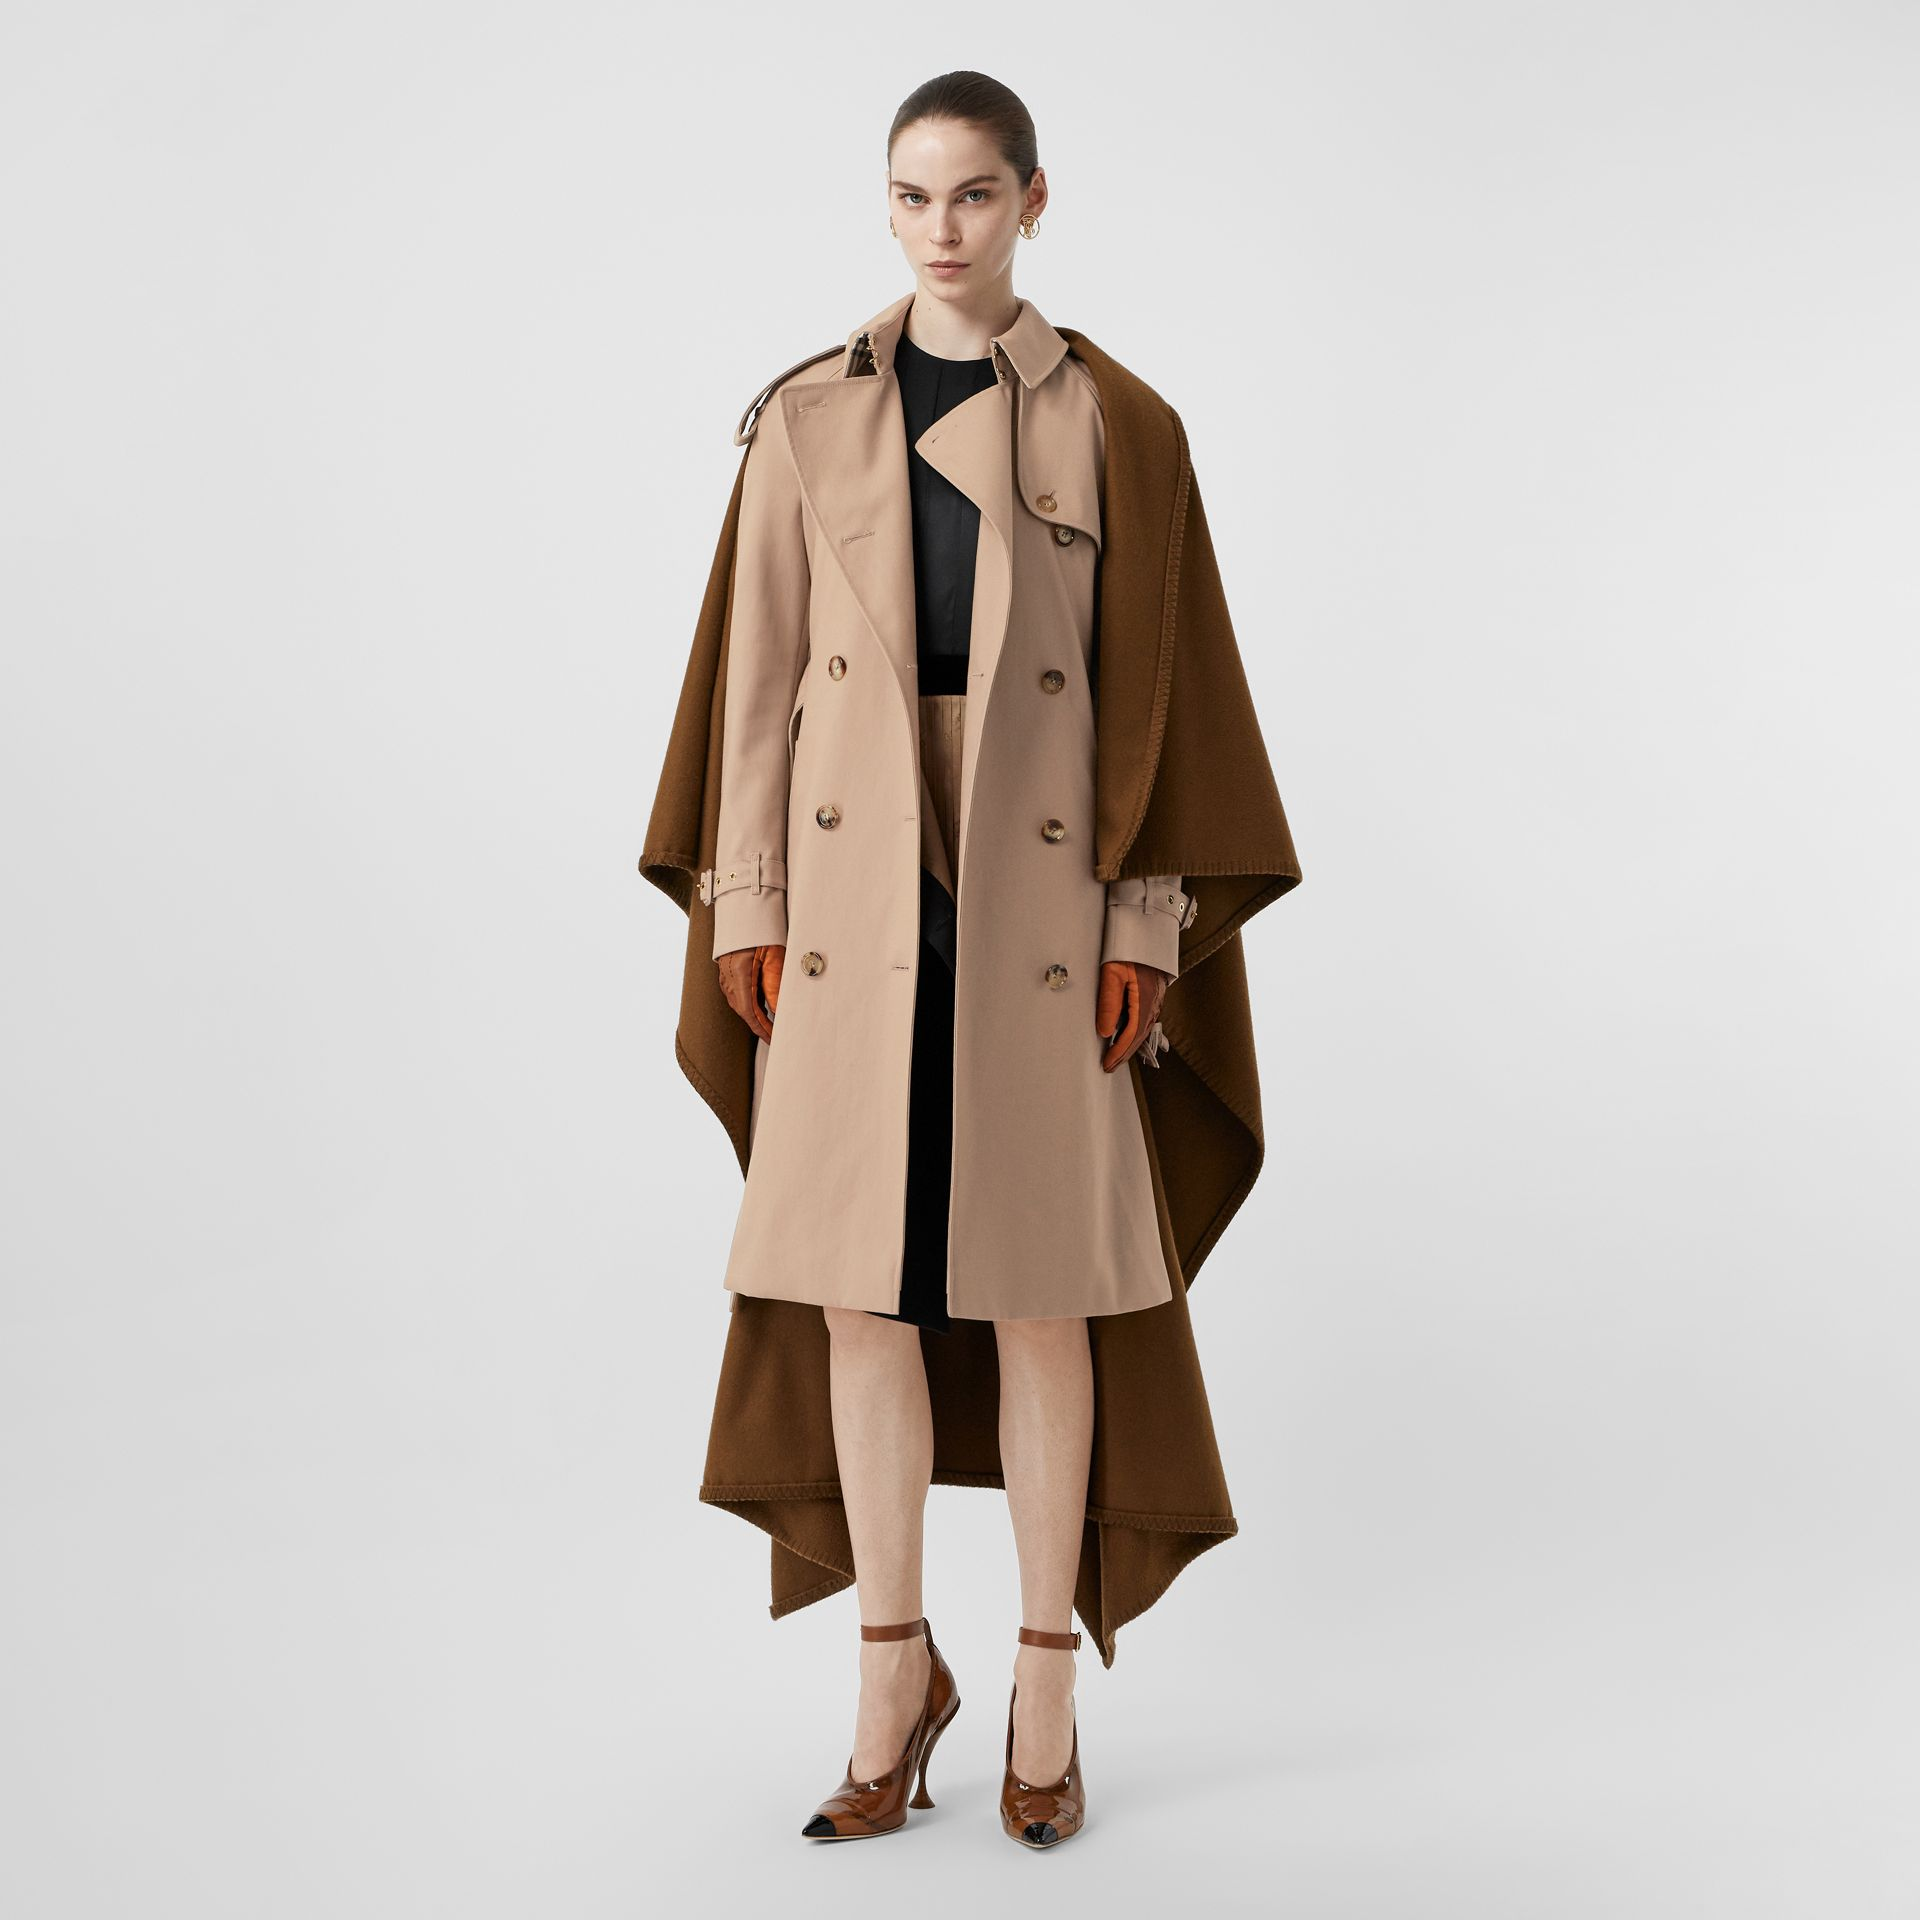 Blanket Detail Cotton Gabardine Trench Coat in Camel - Women | Burberry United States - gallery image 5